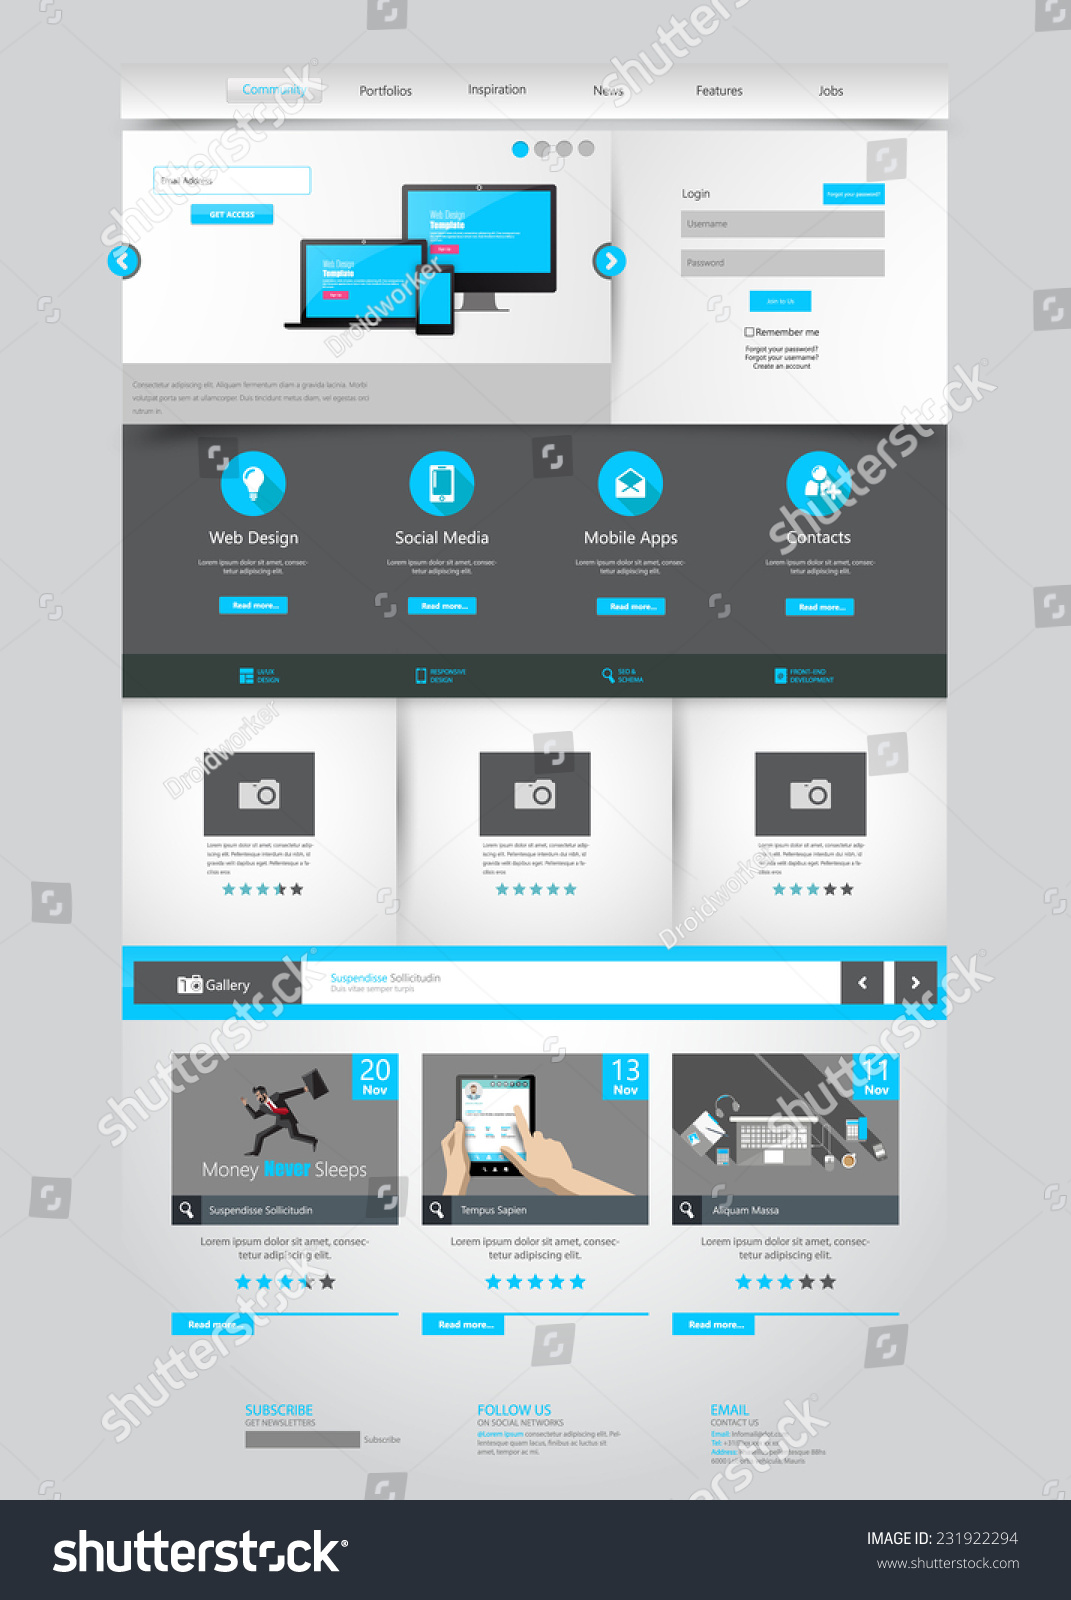 One page business website template home stock vector 231922294 one page business website template home page design clean and simple vector illustration wajeb Images